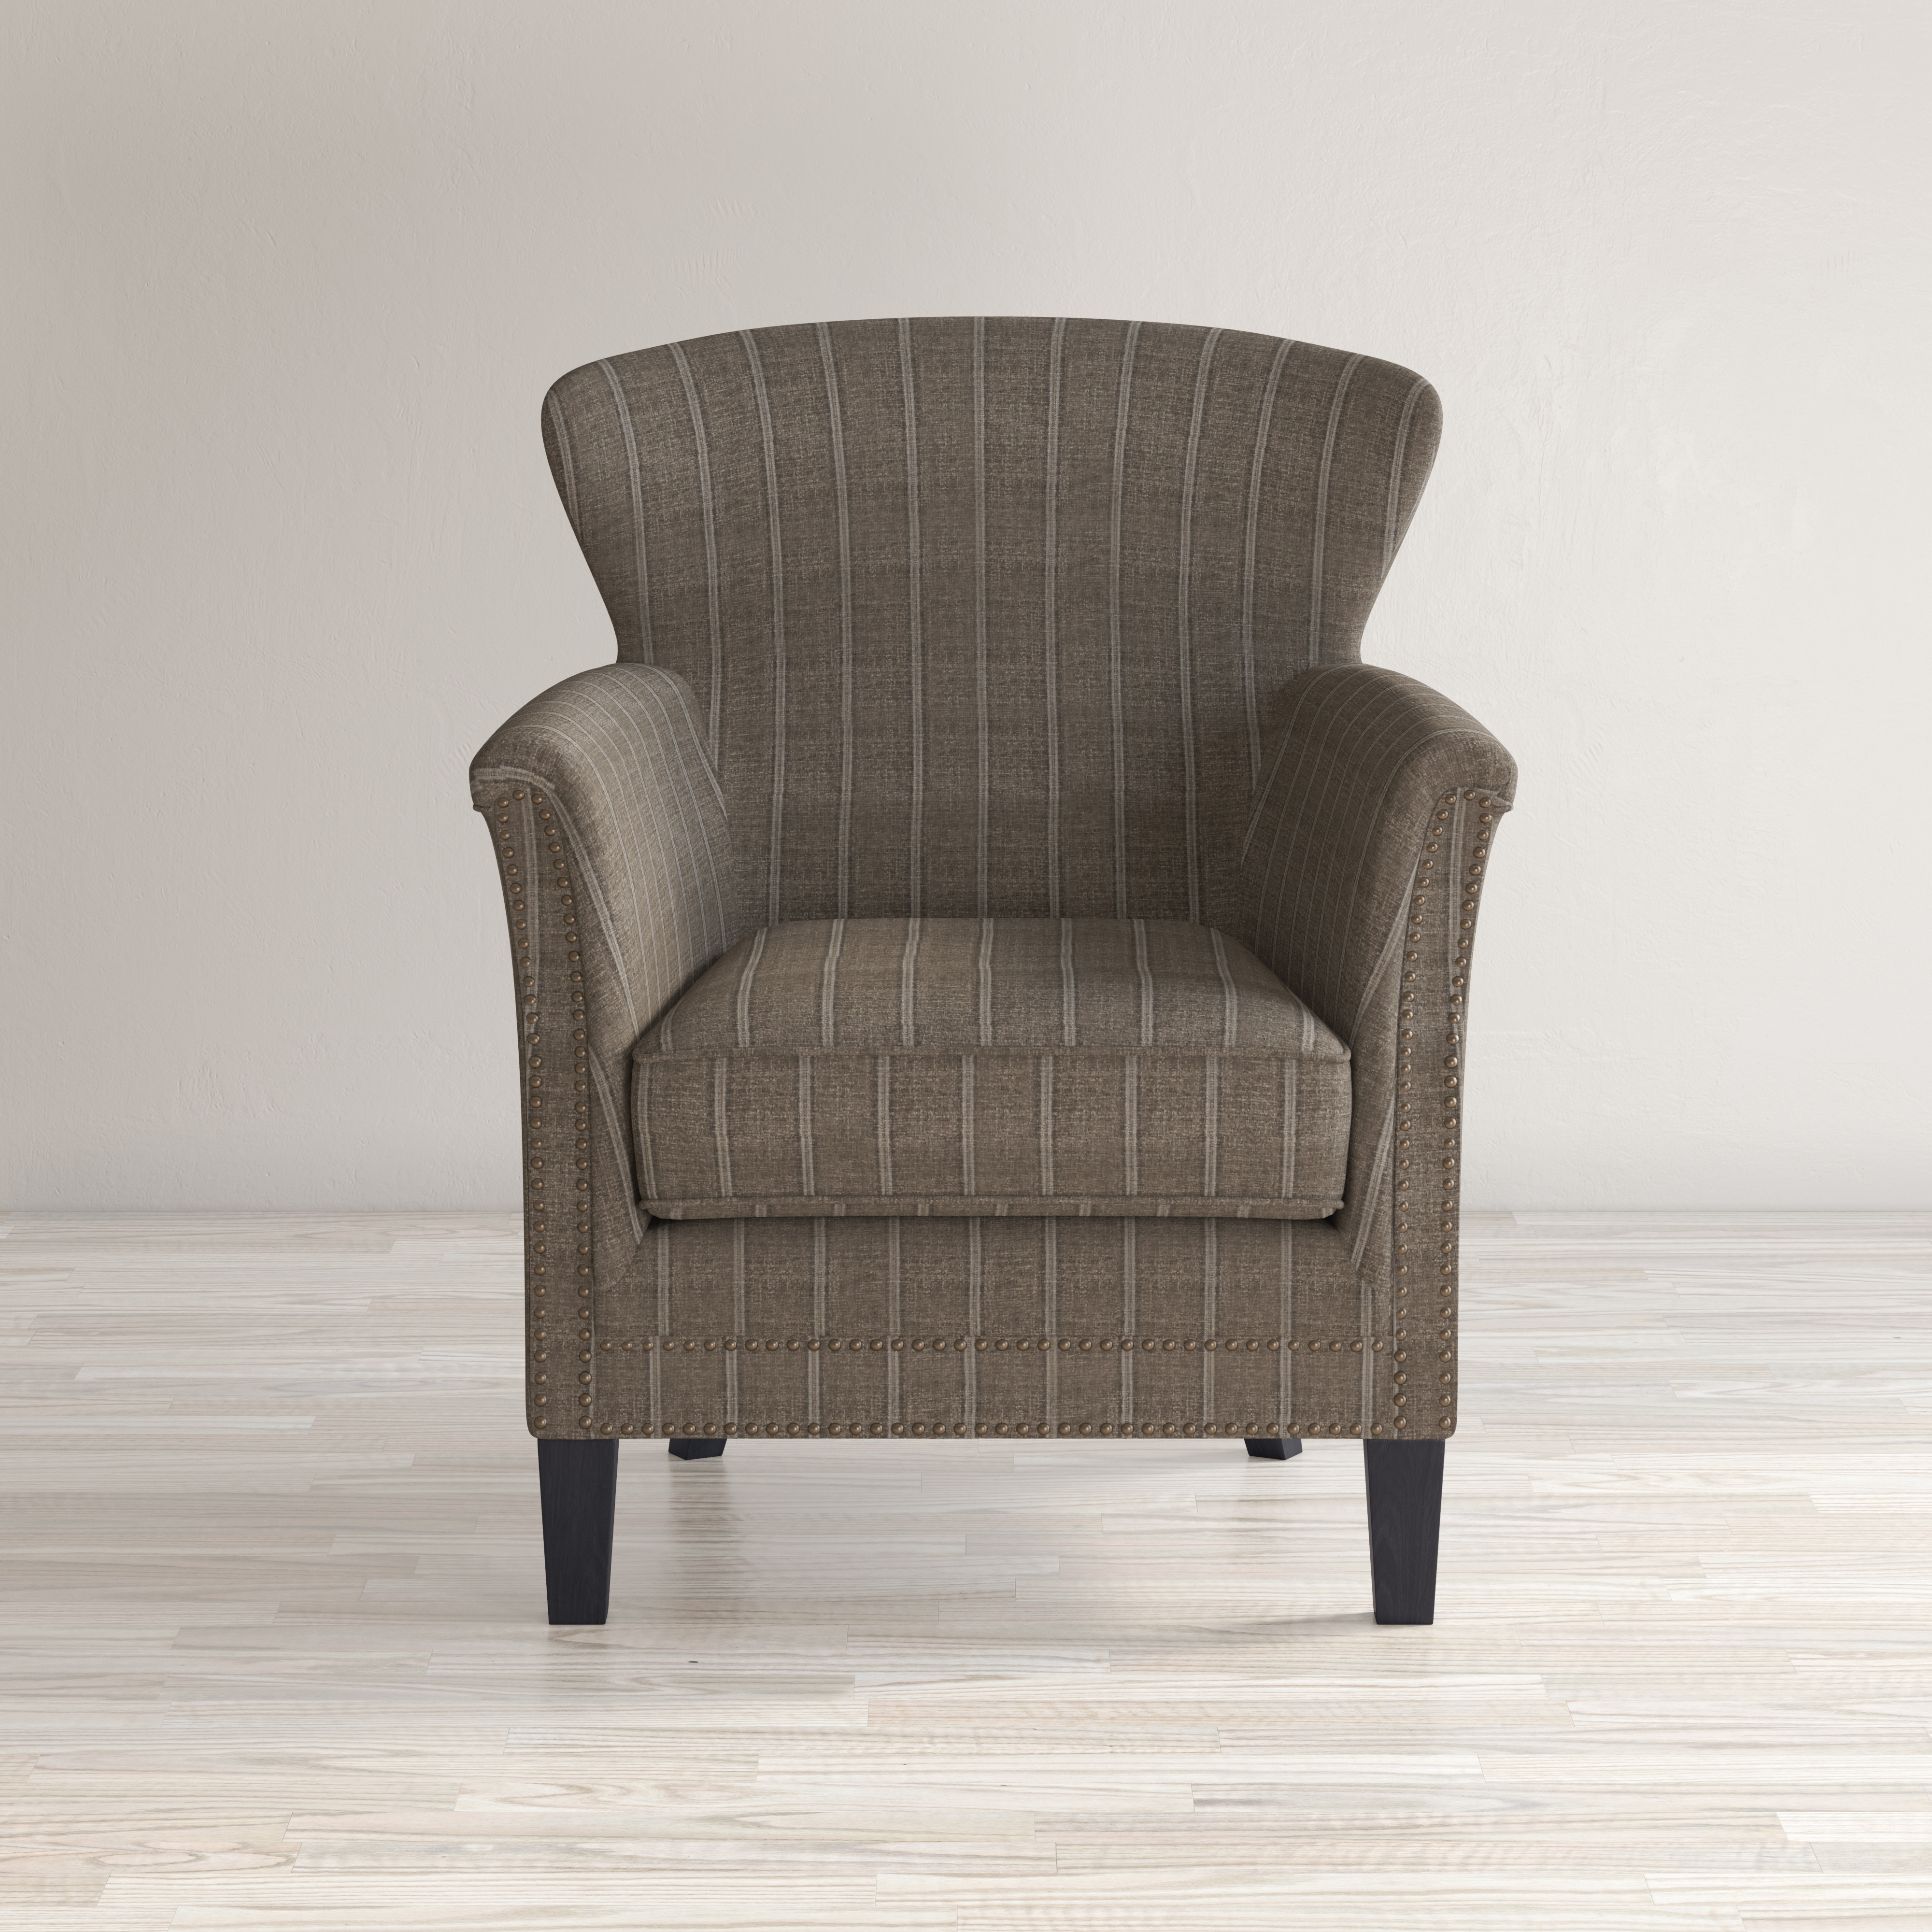 Jofran Accent Chairs Layla Chair by Belfort Essentials at Belfort Furniture